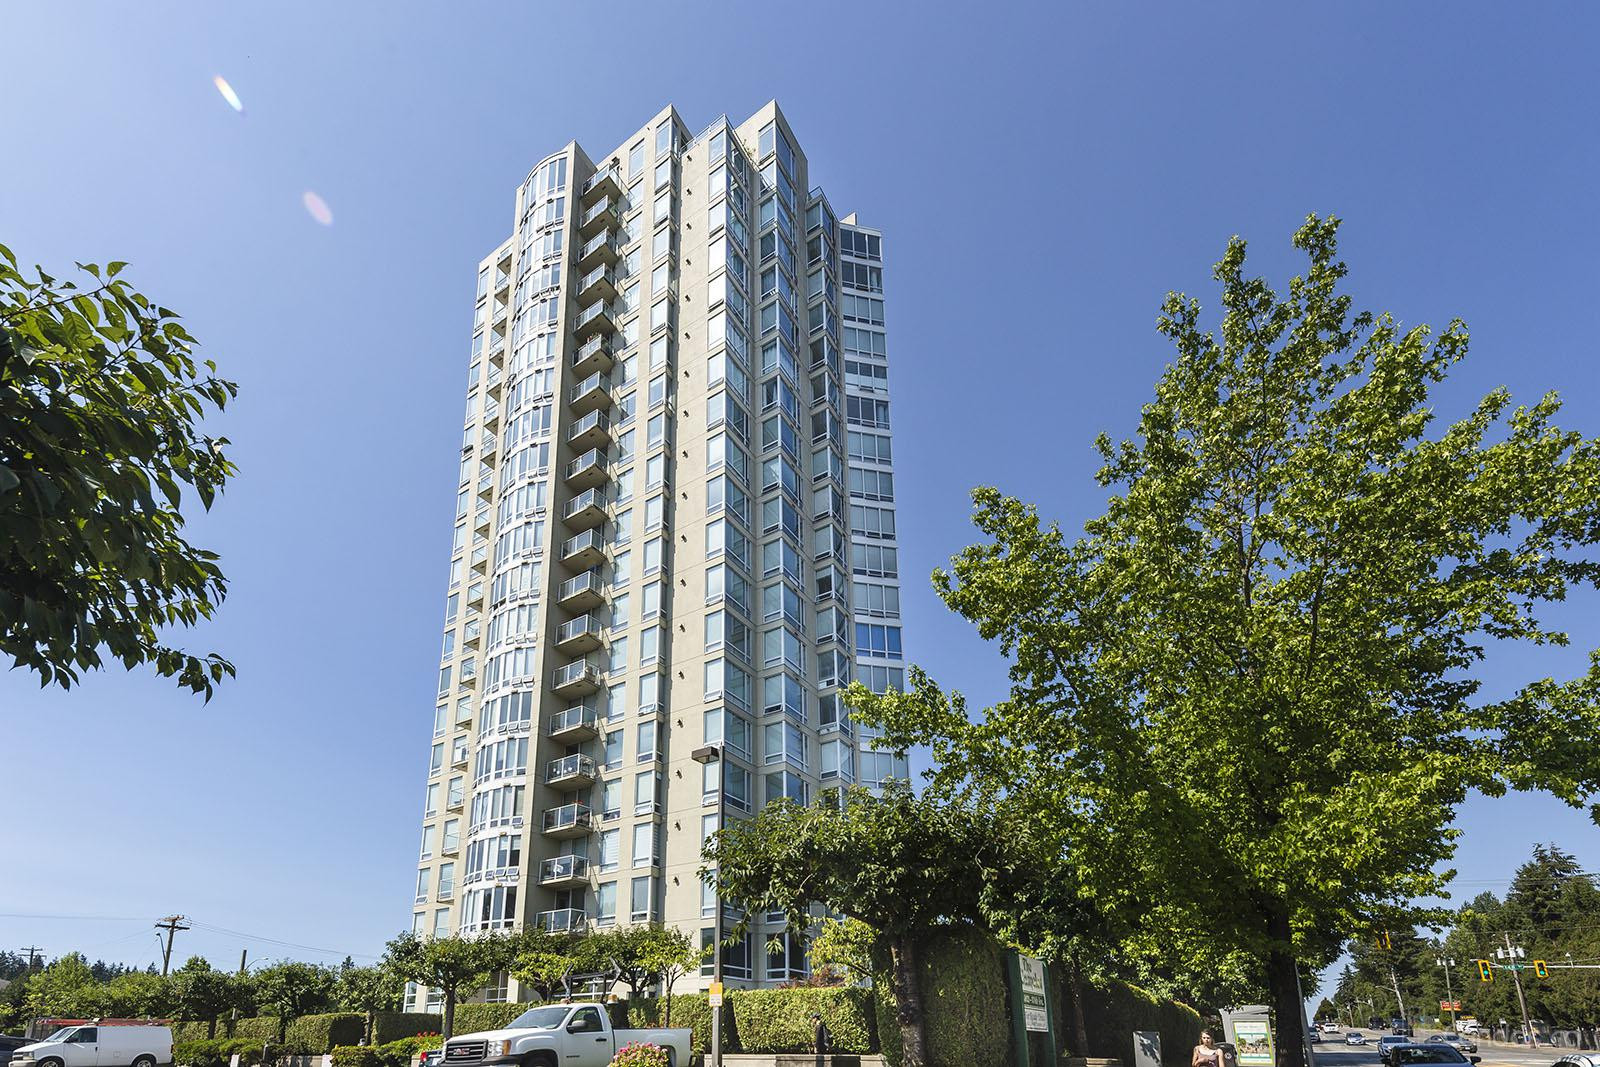 The Camelot at 14820 104 Ave, Surrey 1